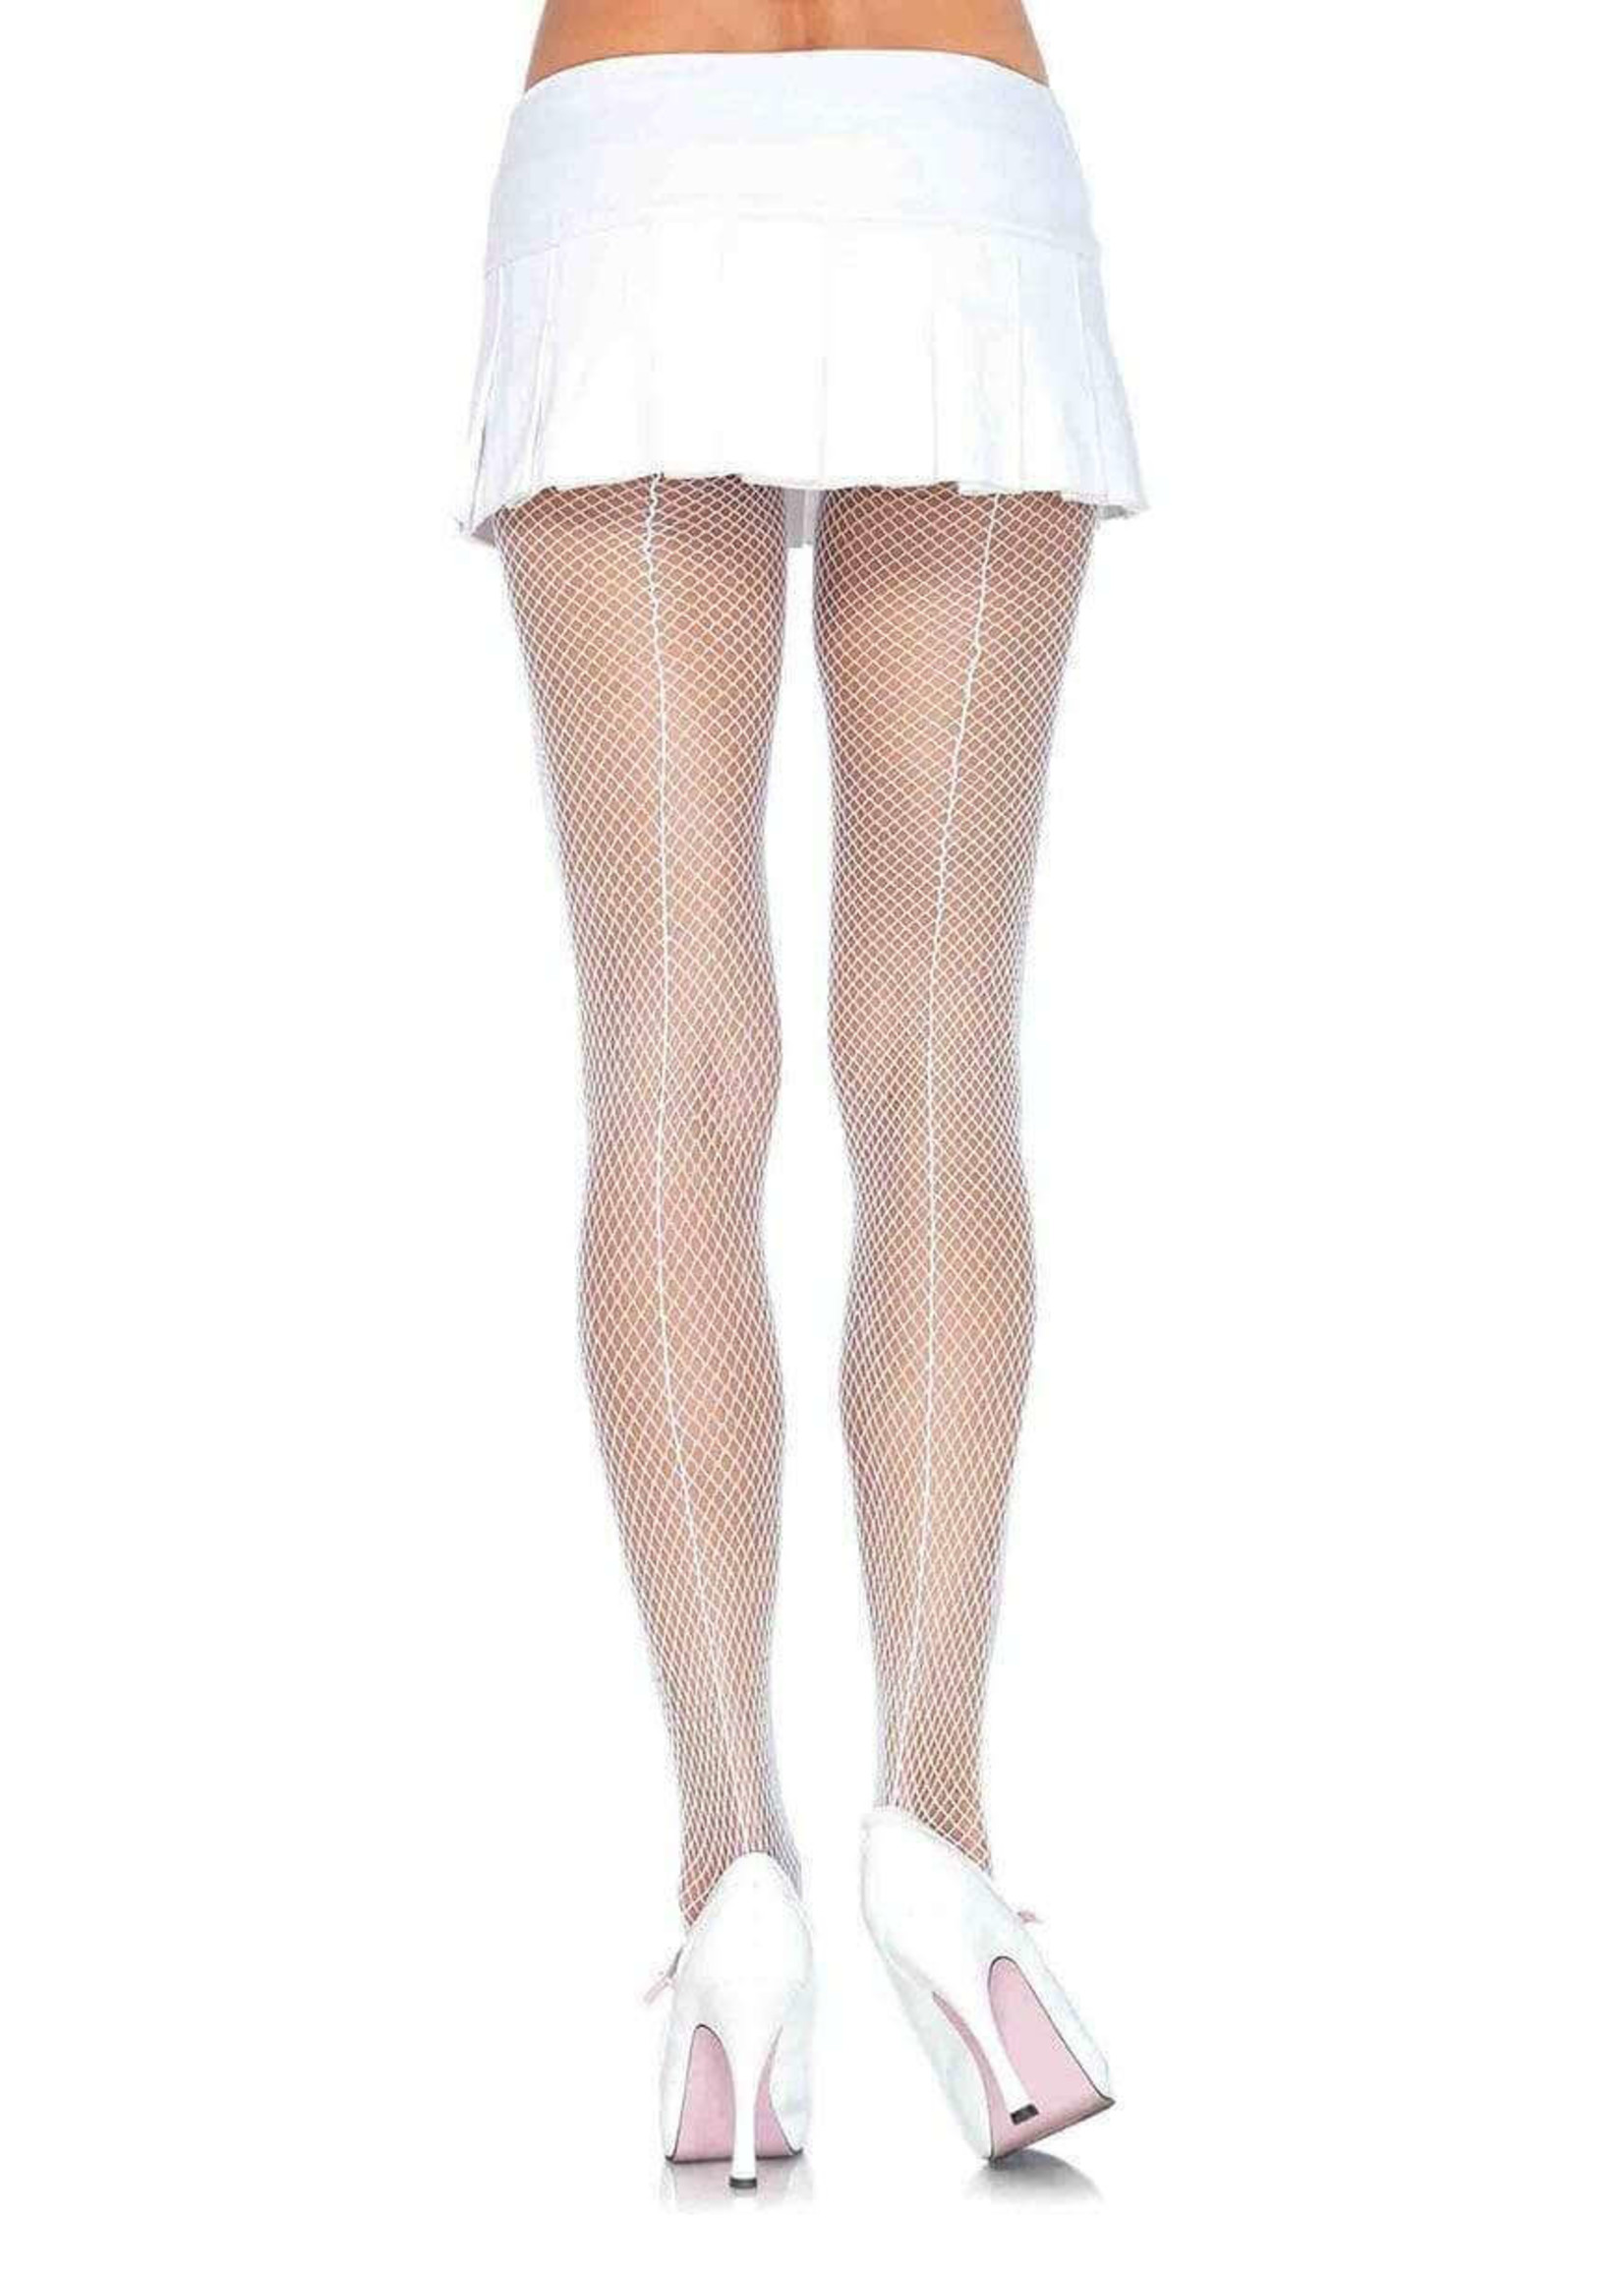 Callie Fishnet Tights with Backseam